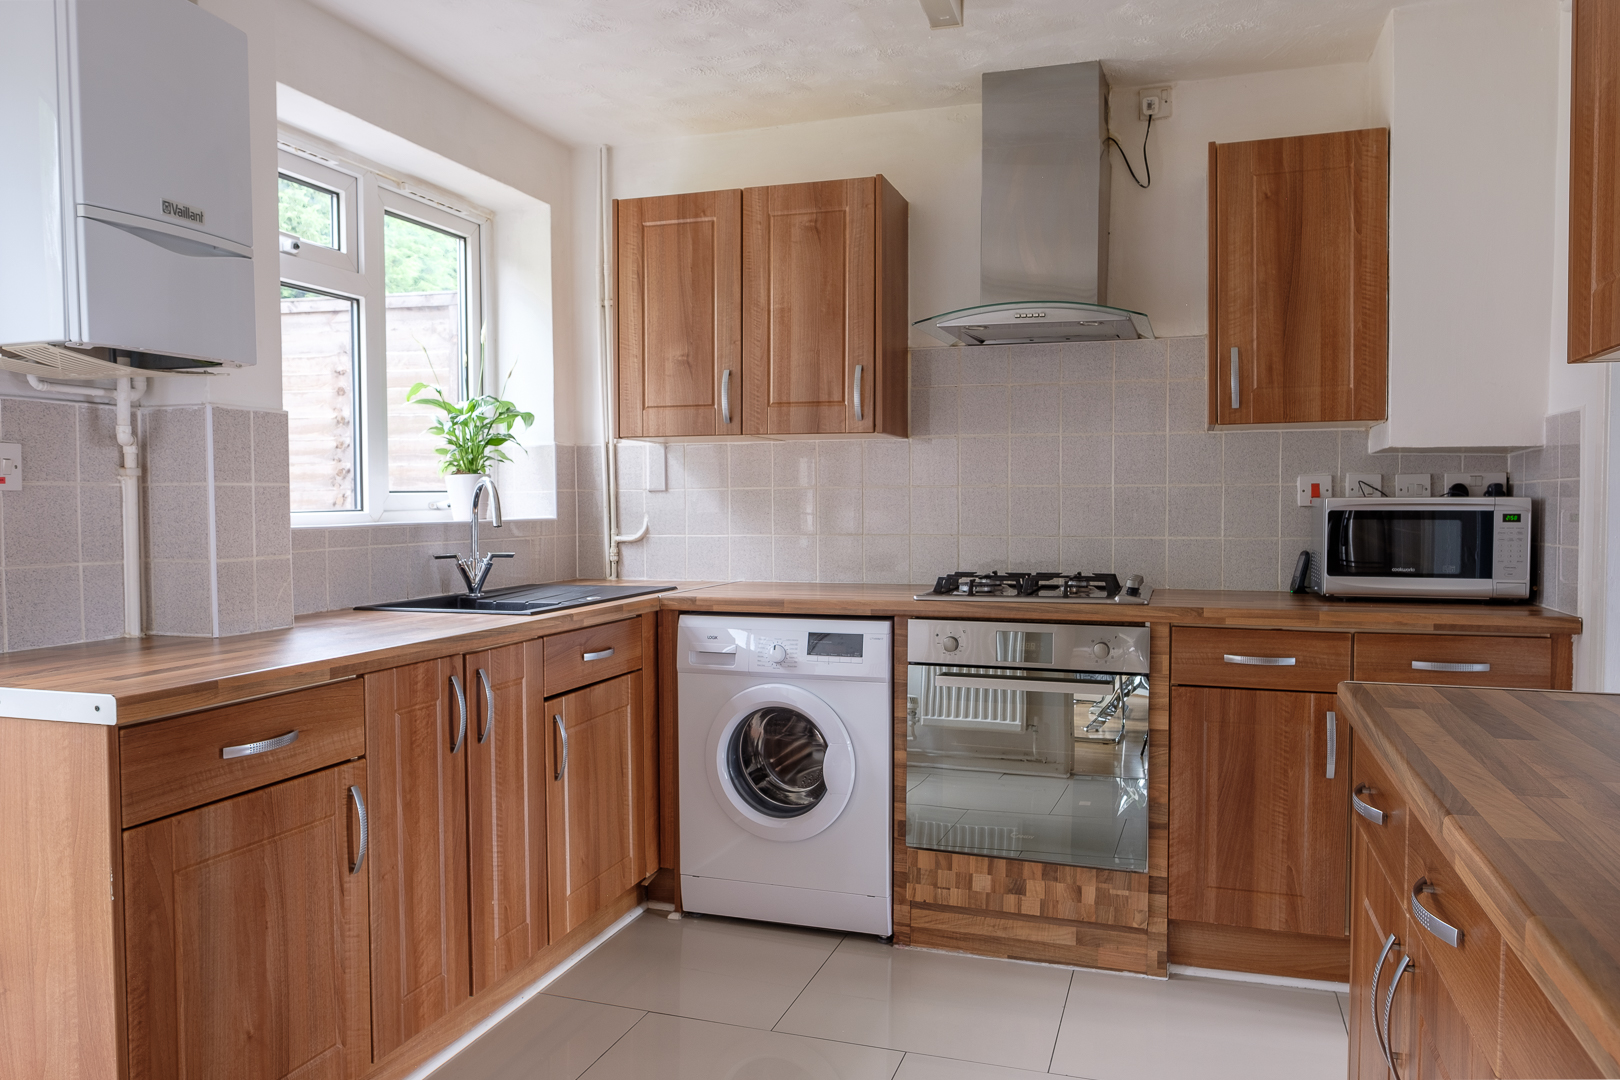 Kitchen at Dickens House, Tilgate, Crawley